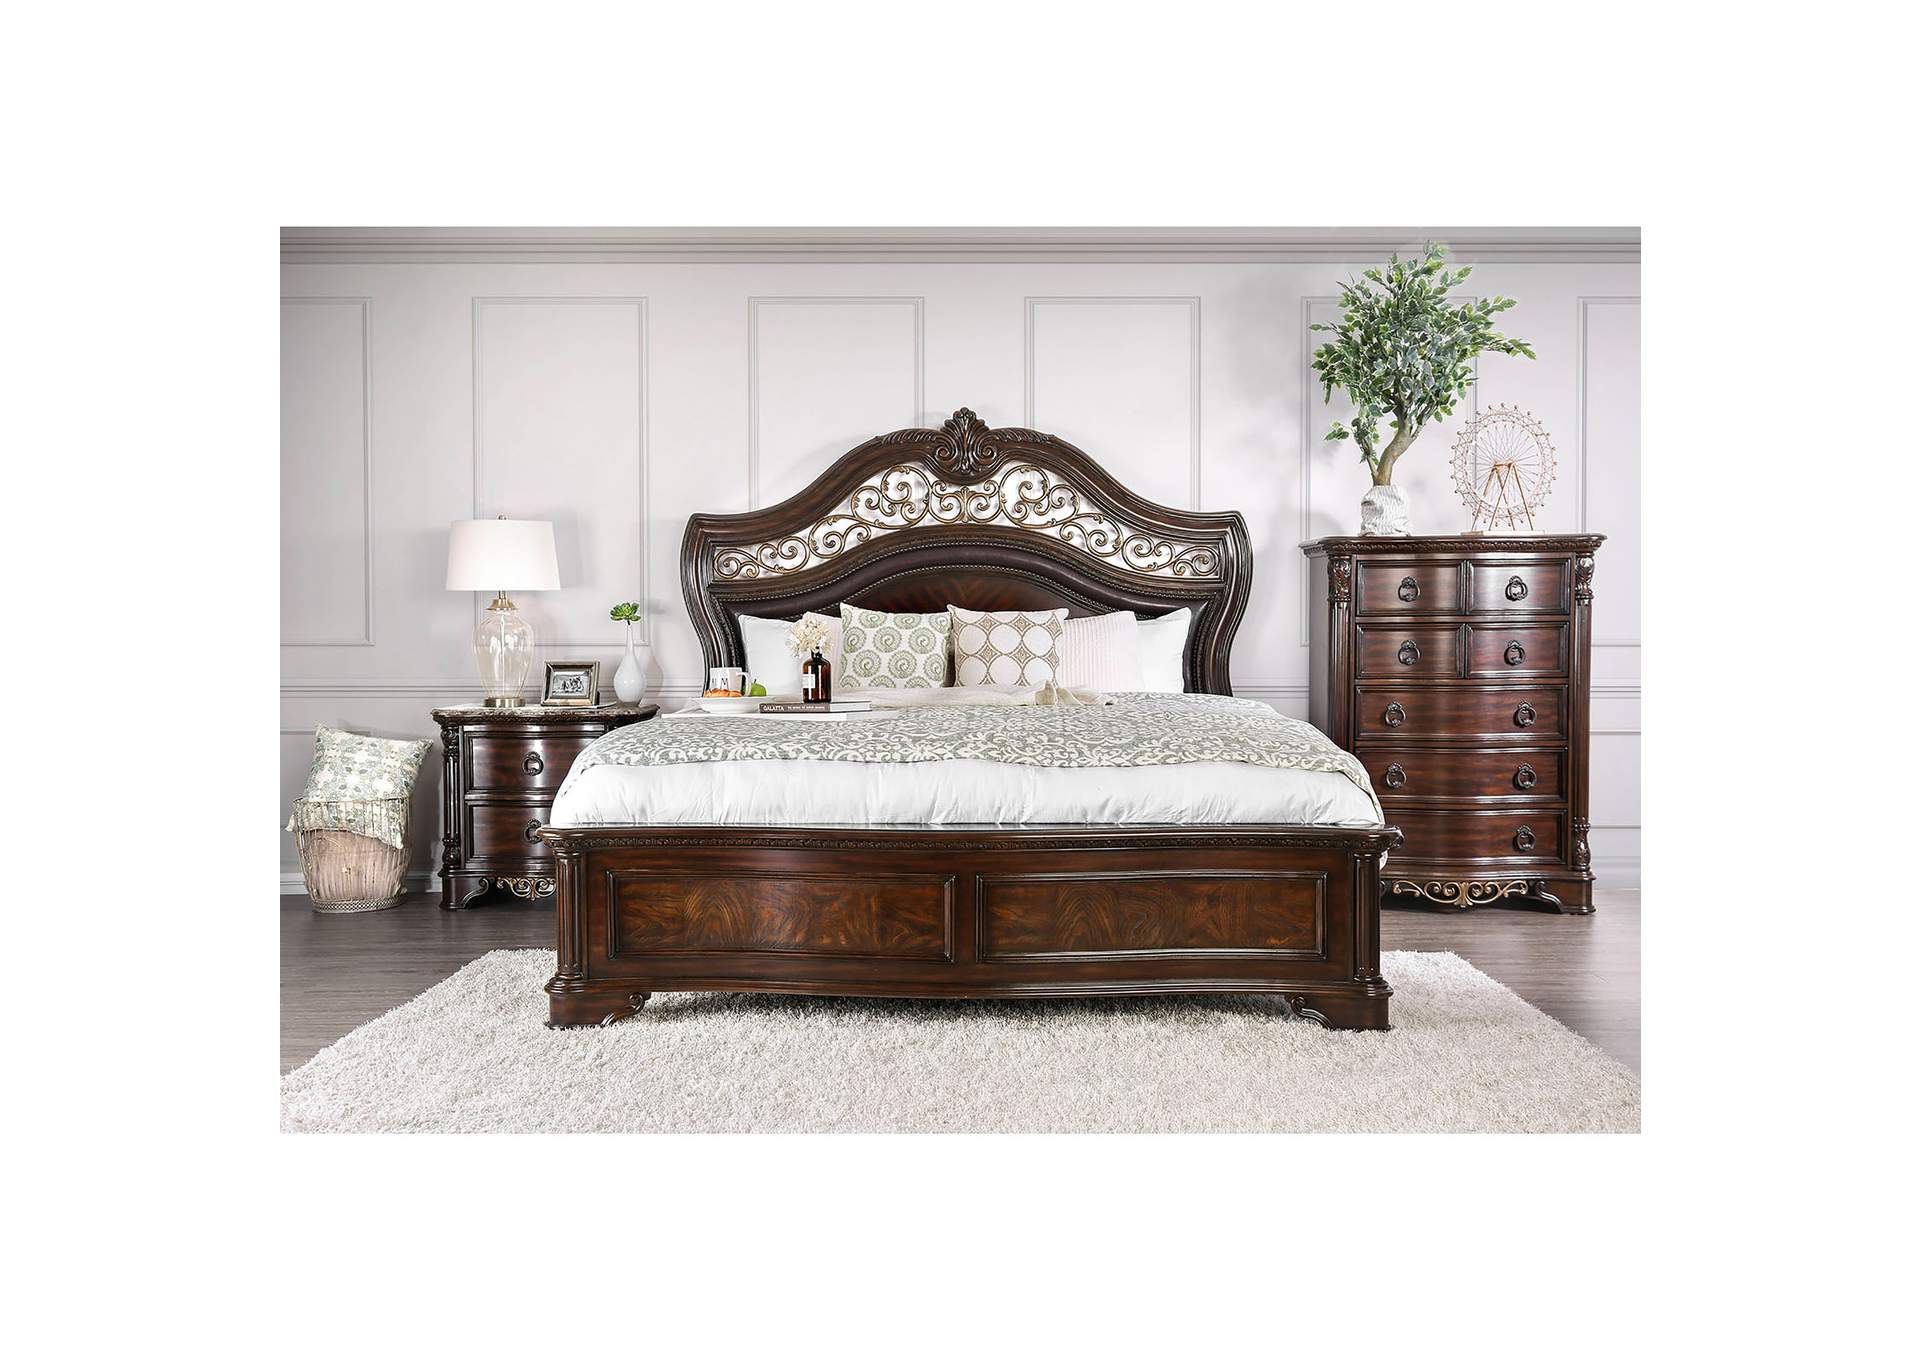 Menodora Brown Queen Platform Bed w/Dresser and Mirror,Furniture of America